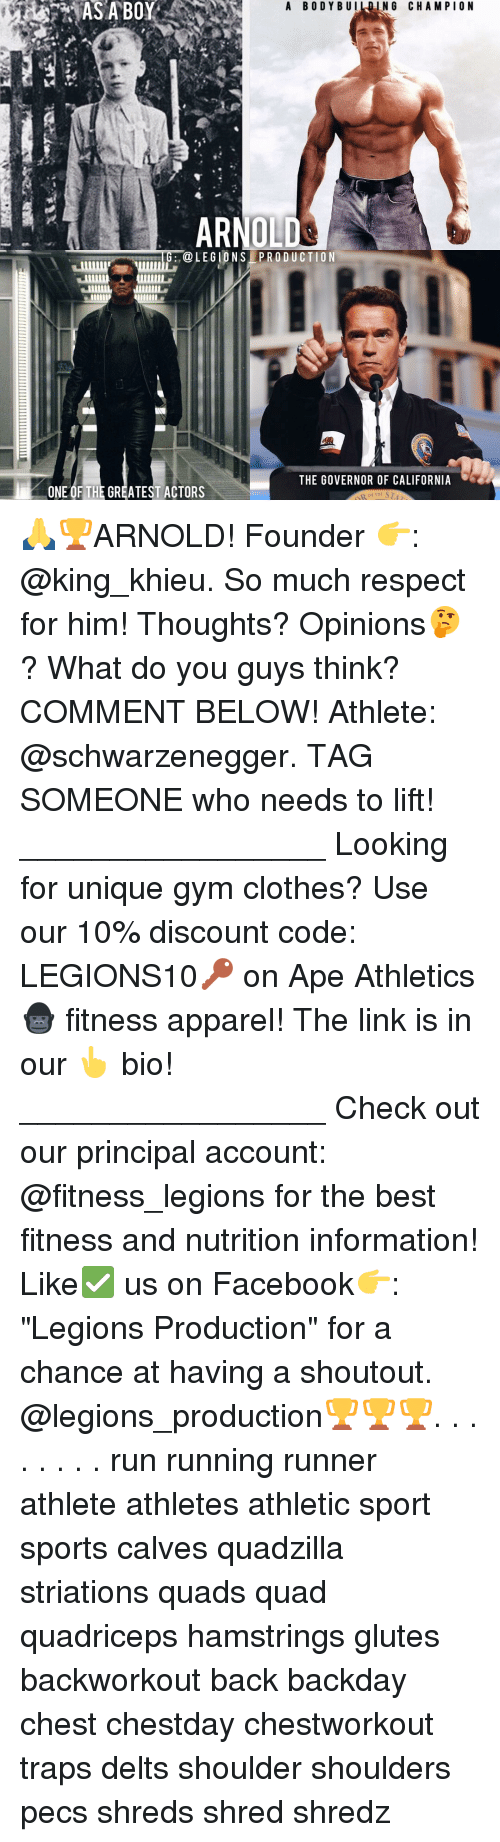 """Memes, 🤖, and The Link: A BODY BUI  NG CHAMPION  AS A BOY  ARNOLD  OLEGIONS PRODUCTION  THE GOVERNOR OF CALIFORNIA  ONE OF THE GREATEST ACTORS 🙏🏆ARNOLD! Founder 👉: @king_khieu. So much respect for him! Thoughts? Opinions🤔? What do you guys think? COMMENT BELOW! Athlete: @schwarzenegger. TAG SOMEONE who needs to lift! _________________ Looking for unique gym clothes? Use our 10% discount code: LEGIONS10🔑 on Ape Athletics 🦍 fitness apparel! The link is in our 👆 bio! _________________ Check out our principal account: @fitness_legions for the best fitness and nutrition information! Like✅ us on Facebook👉: """"Legions Production"""" for a chance at having a shoutout. @legions_production🏆🏆🏆. . . . . . . . run running runner athlete athletes athletic sport sports calves quadzilla striations quads quad quadriceps hamstrings glutes backworkout back backday chest chestday chestworkout traps delts shoulder shoulders pecs shreds shred shredz"""